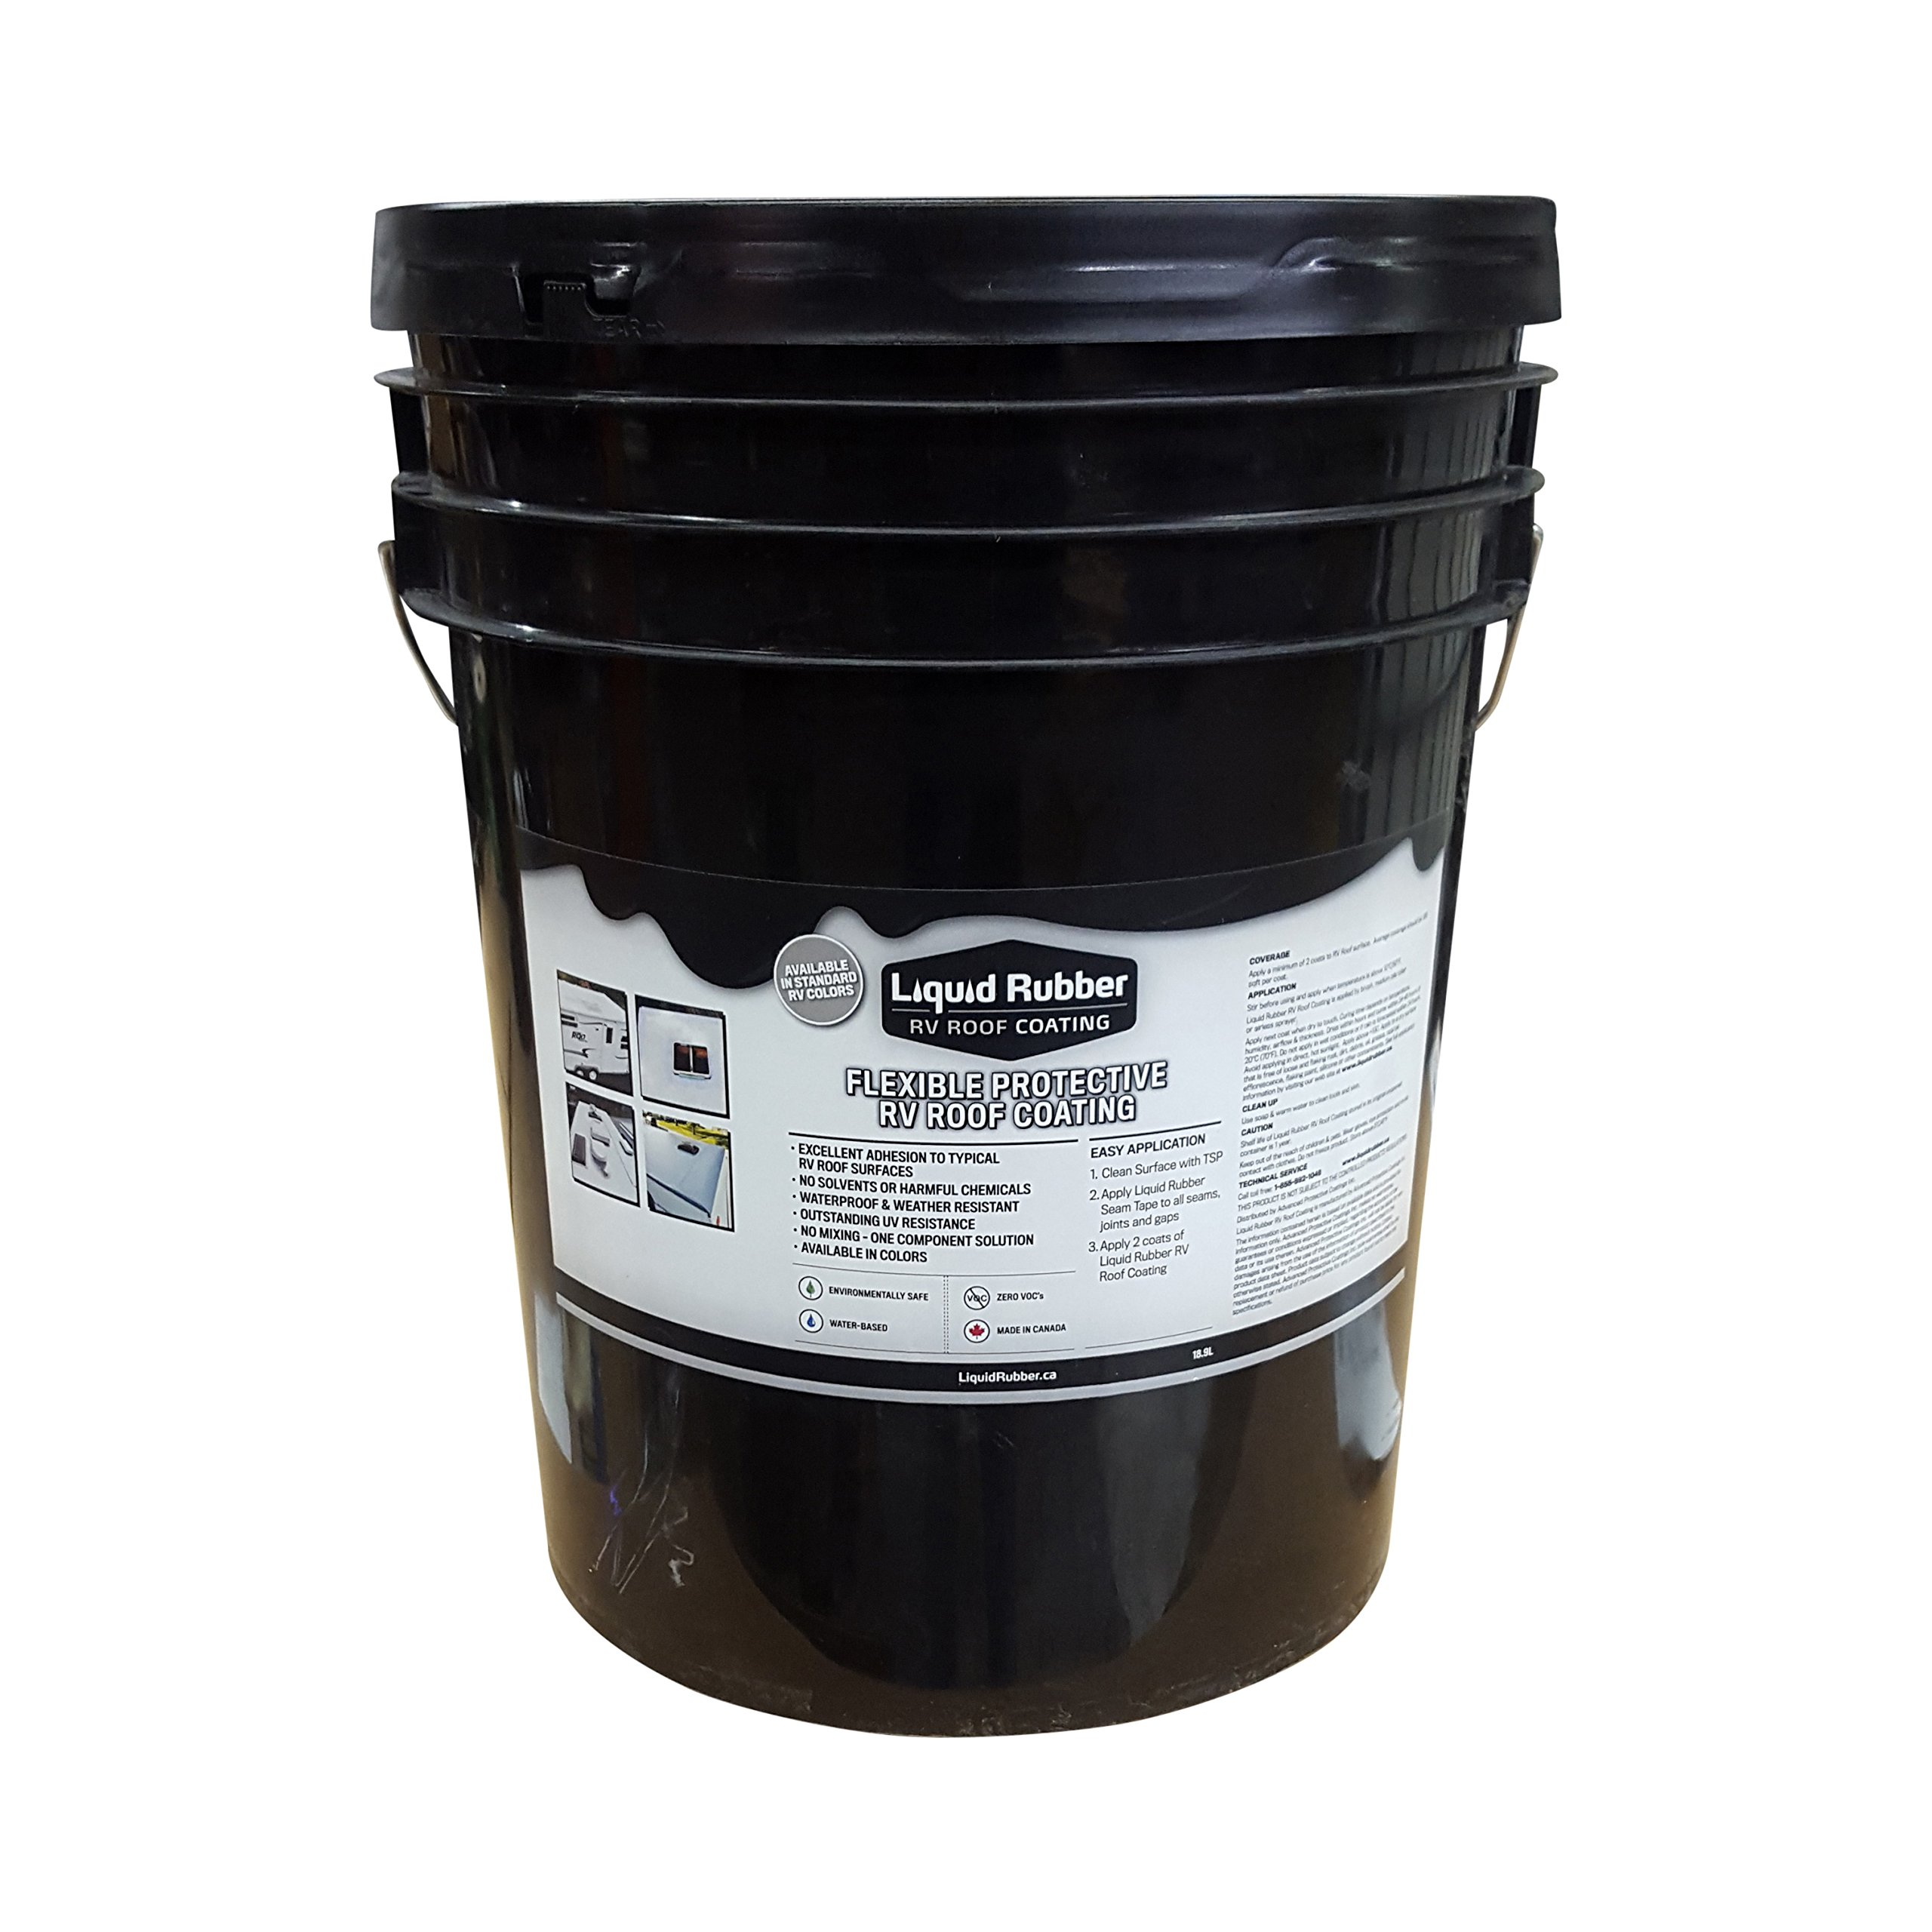 Liquid Rubber RV Roof Coating/Sealant - 5 Gallon - Brilliant White - Solar Reflective Cool Roof - Waterproof - Environmentally Friendly - No Solvents or VOC's - Easy to Apply - No Mixing - TOP SELLER